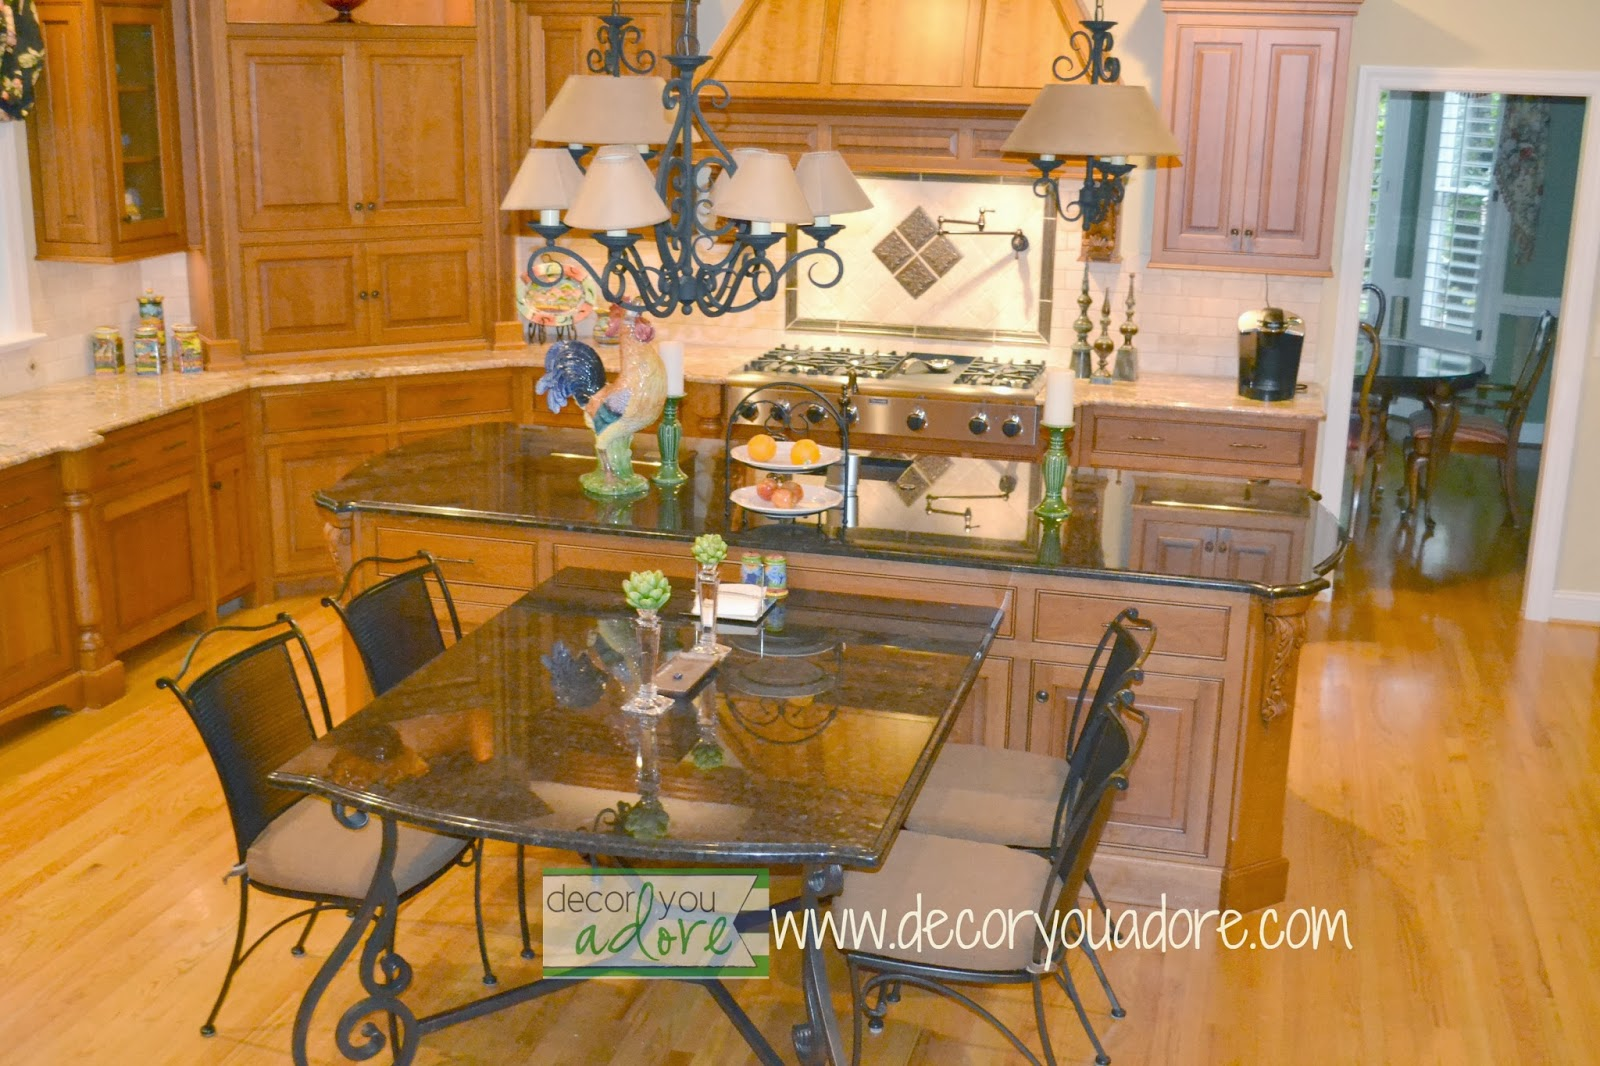 Decor You Adore: Dream Kitchen Remodel With All The Bells